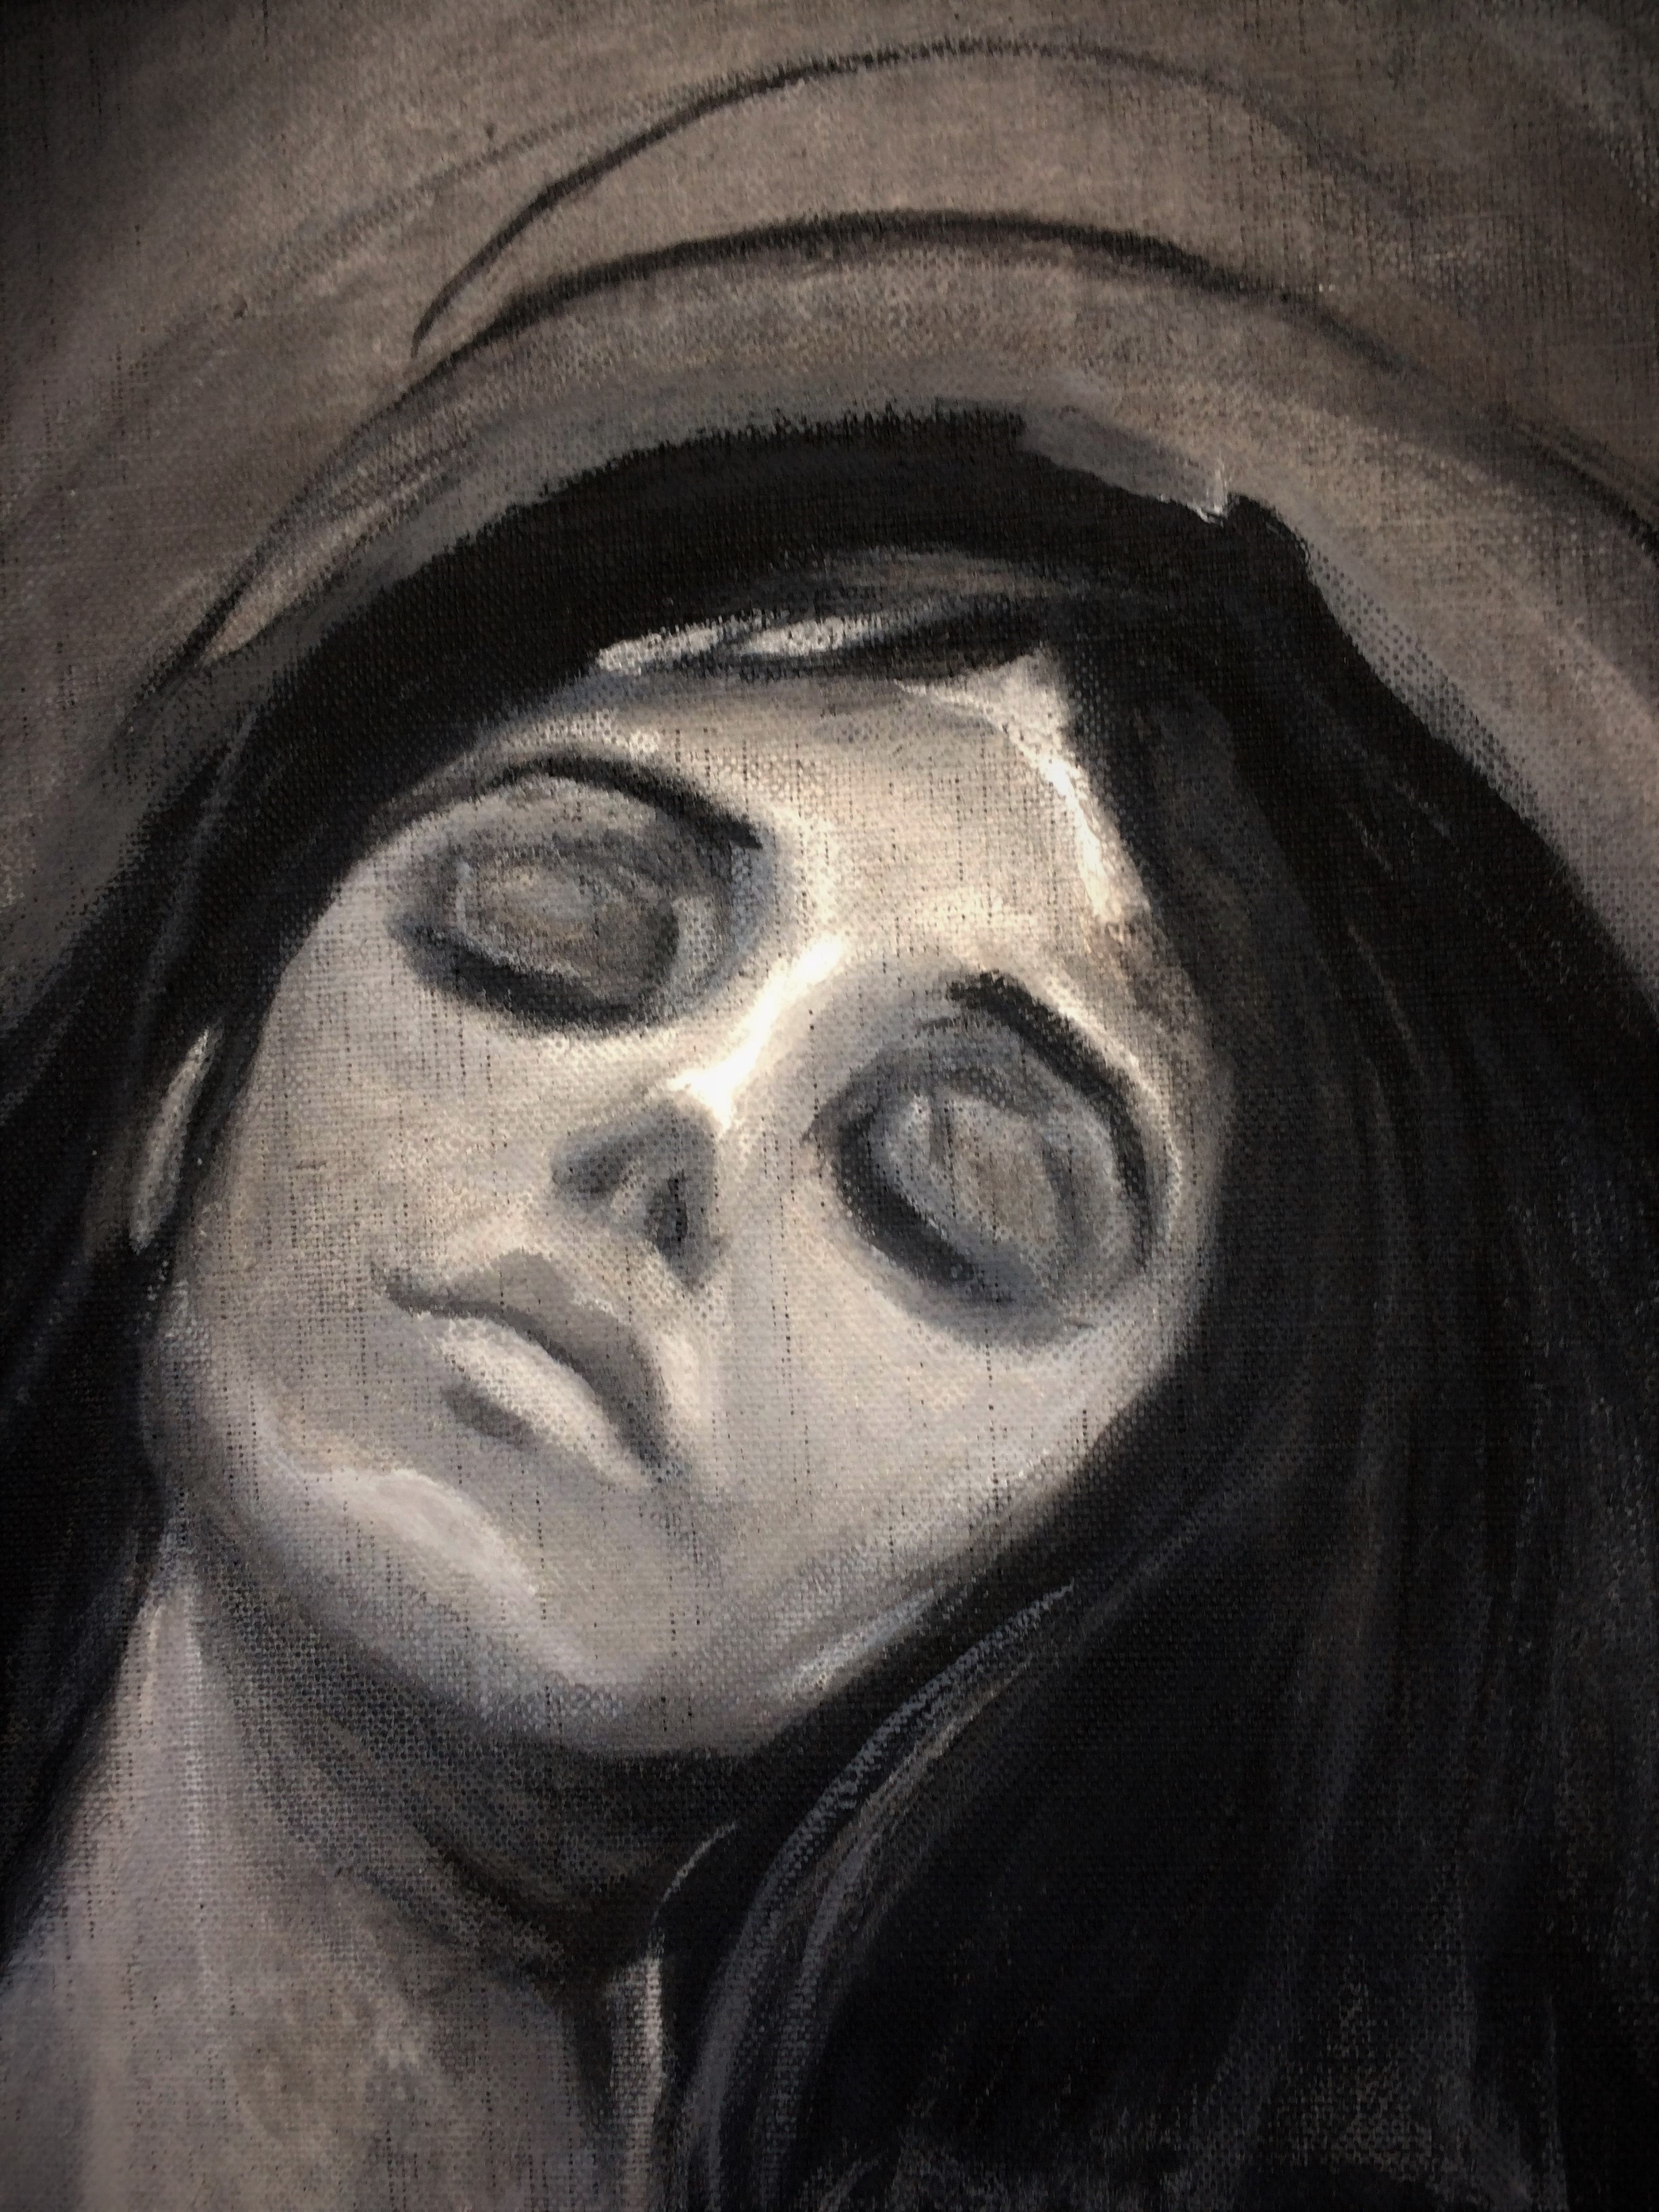 E.Munch - Madonna - Detail